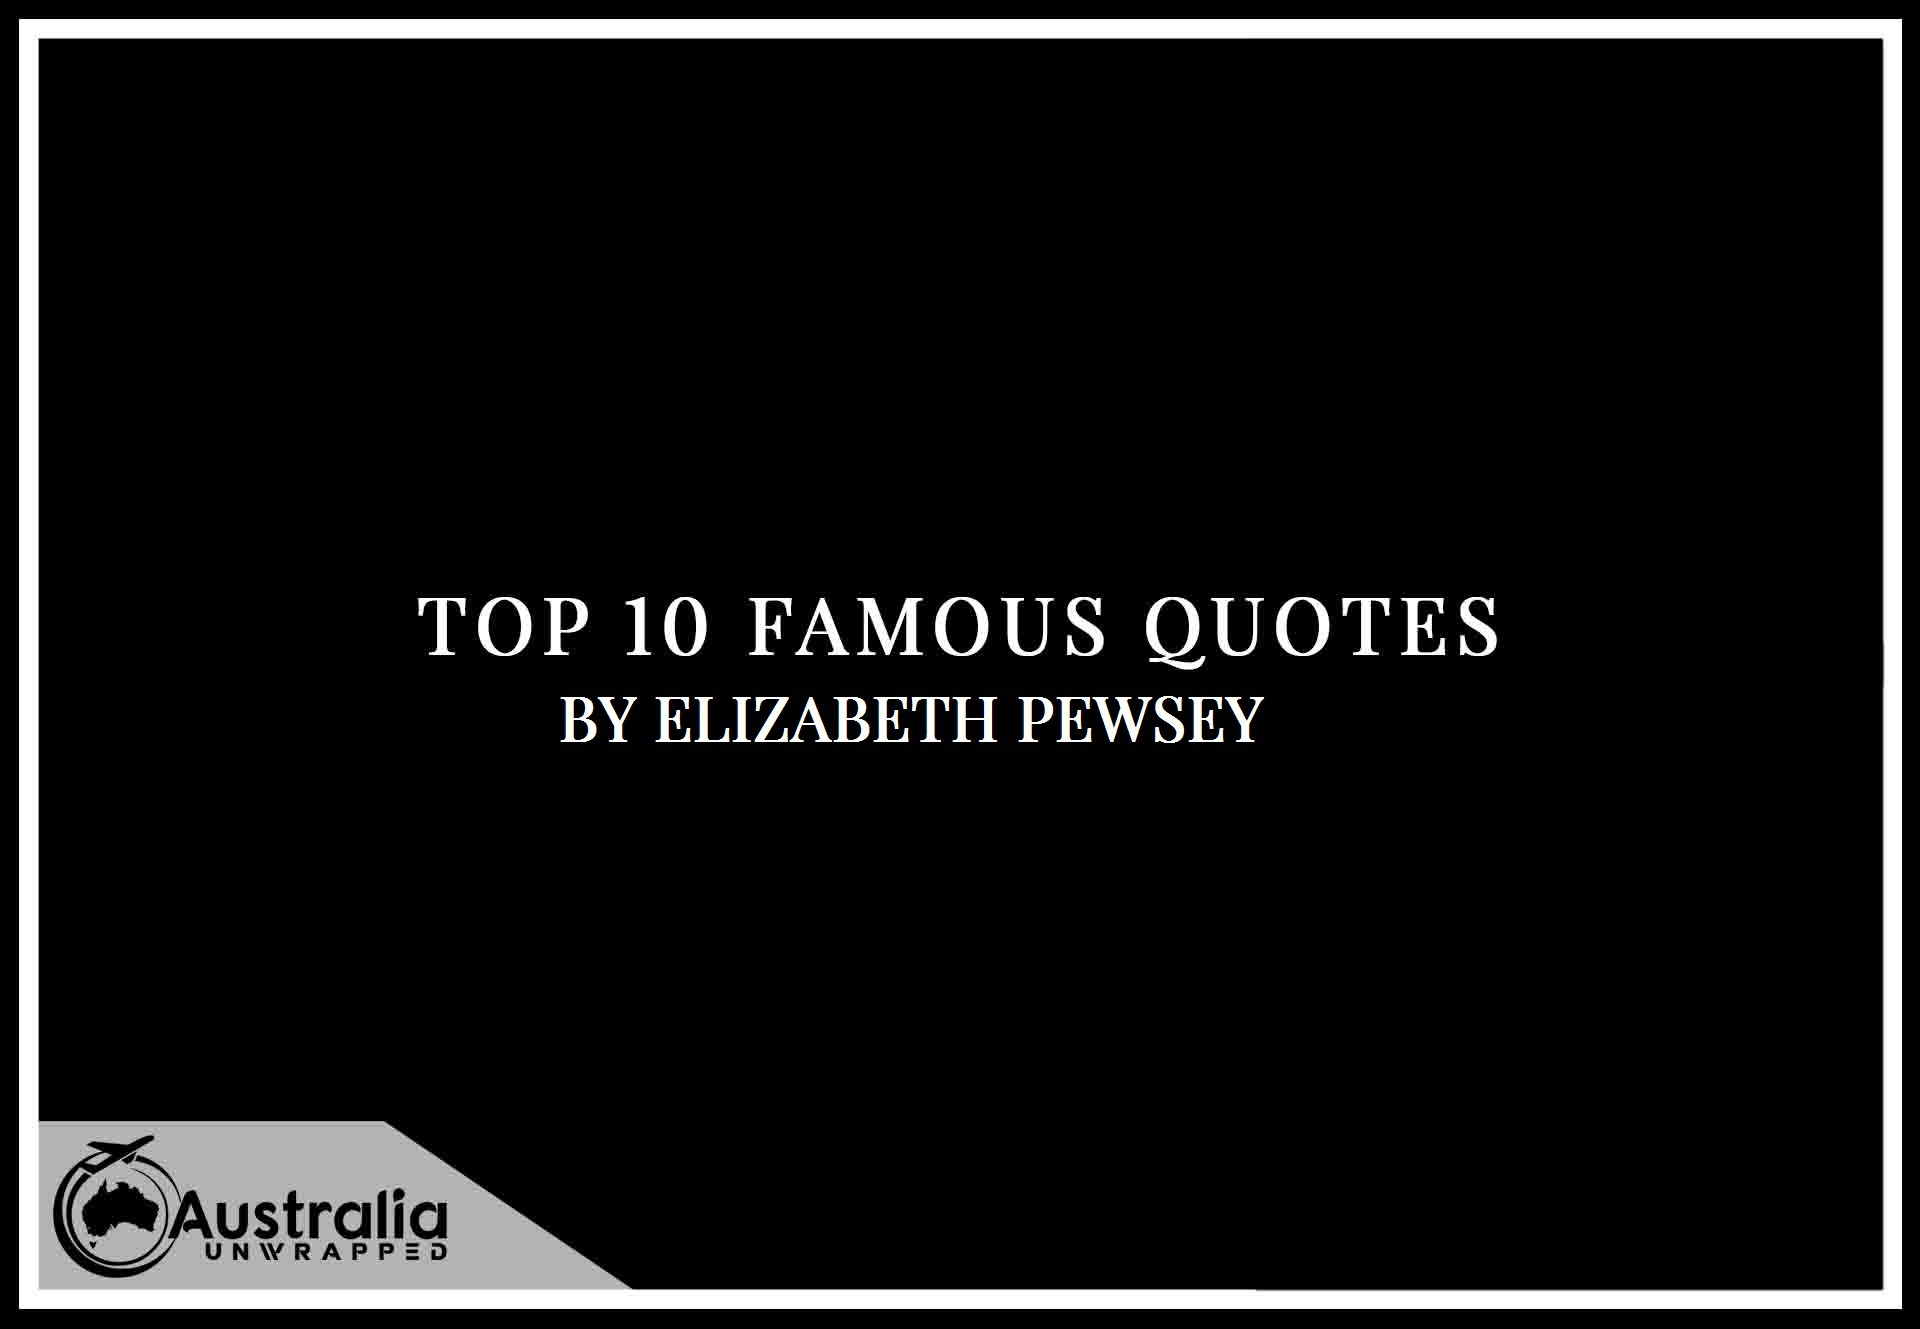 Elizabeth Pewsey's Top 10 Popular and Famous Quotes